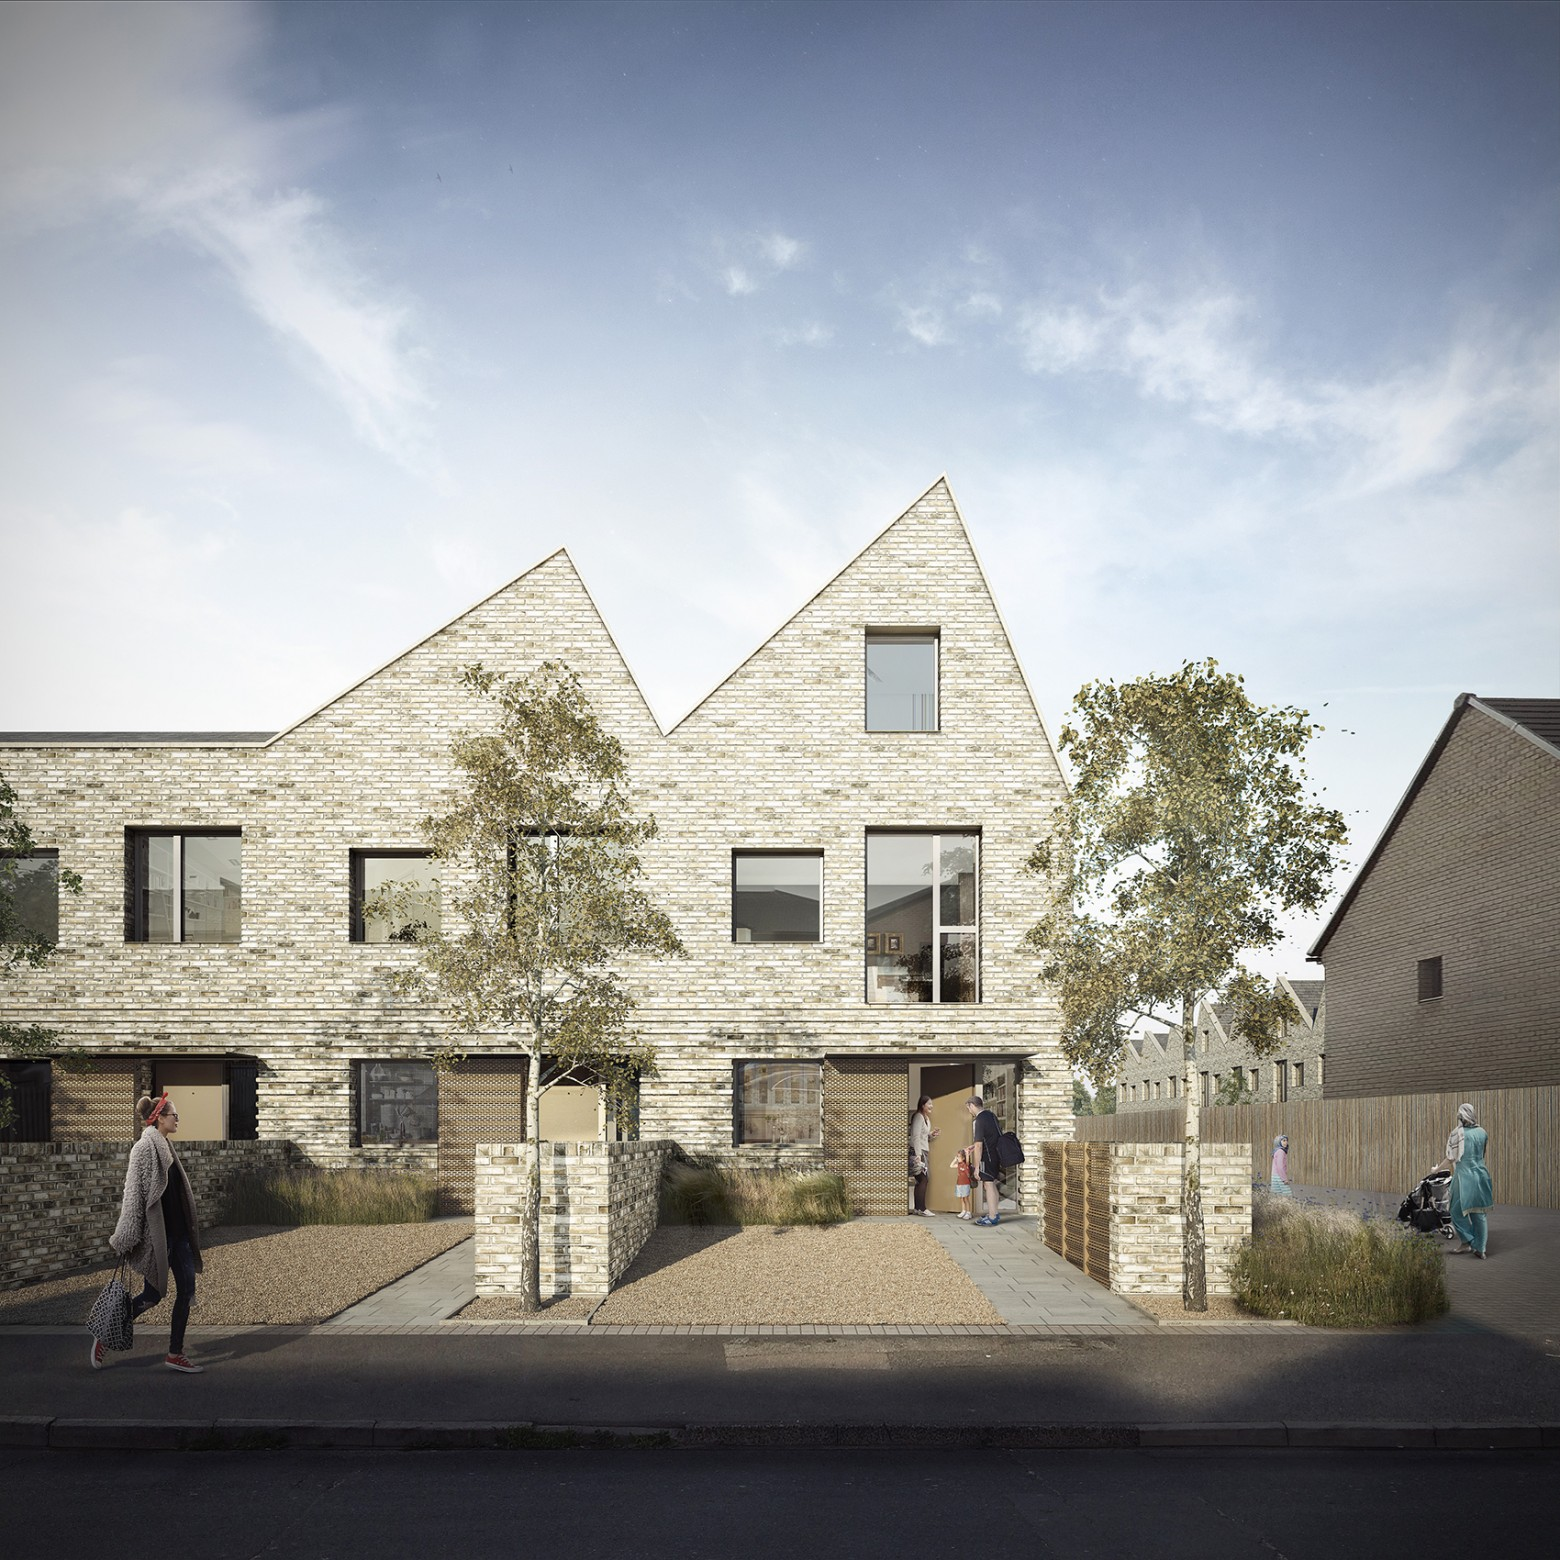 Planning submitted for new council homes in Sutton